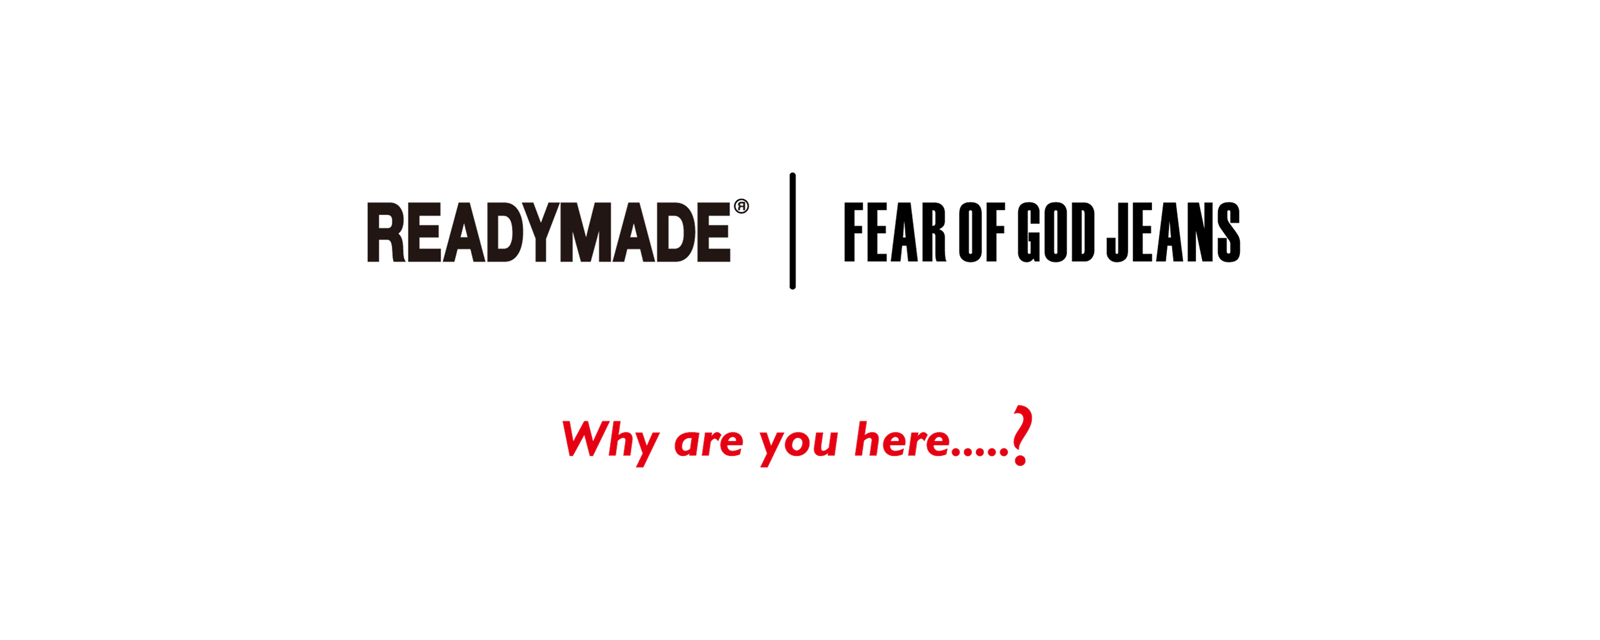 READYMADE × FEAR OF GOD JEANS